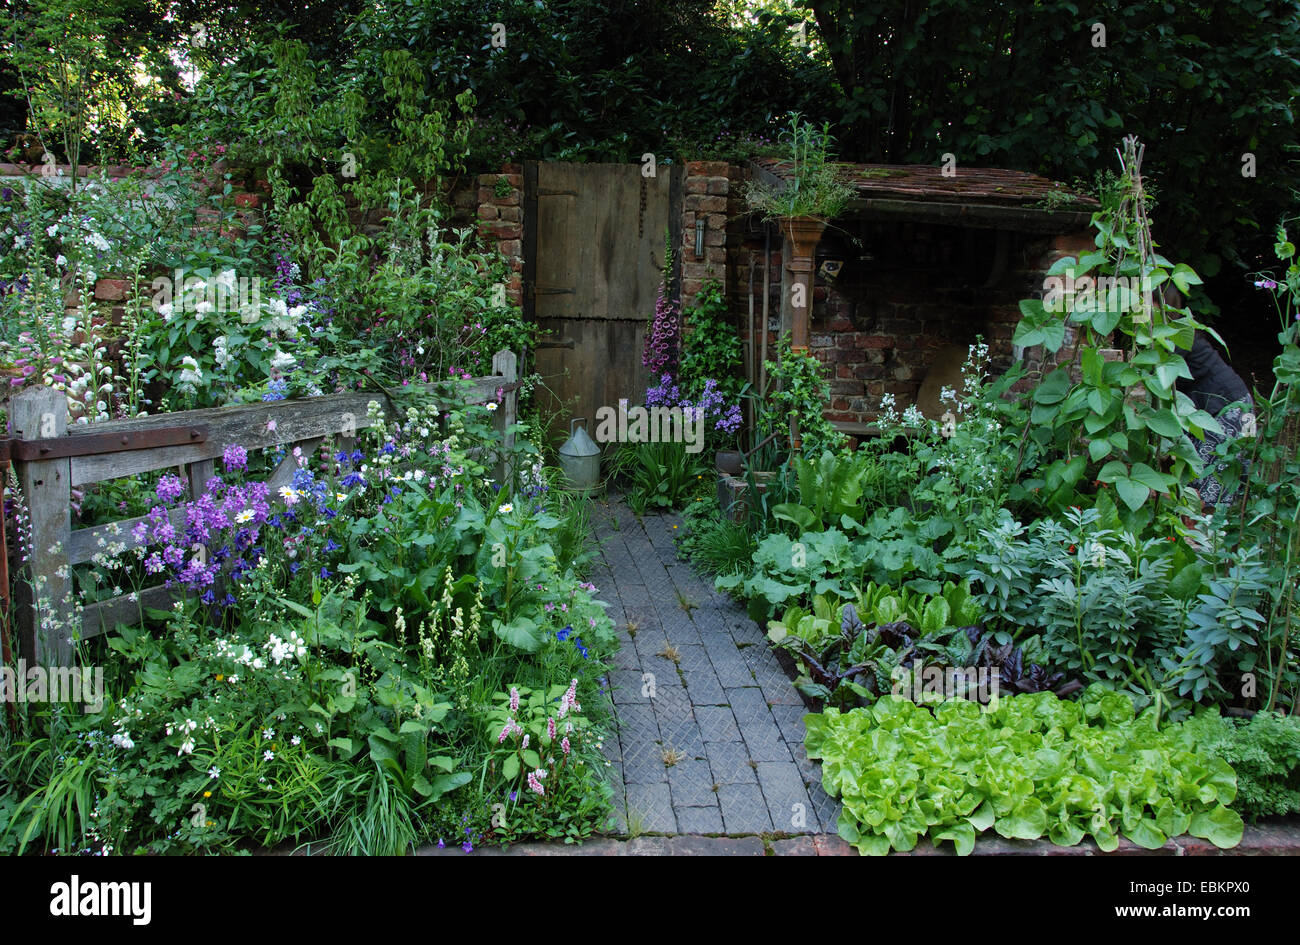 a w gardening services' 'the old gate' courtyard show garden stock